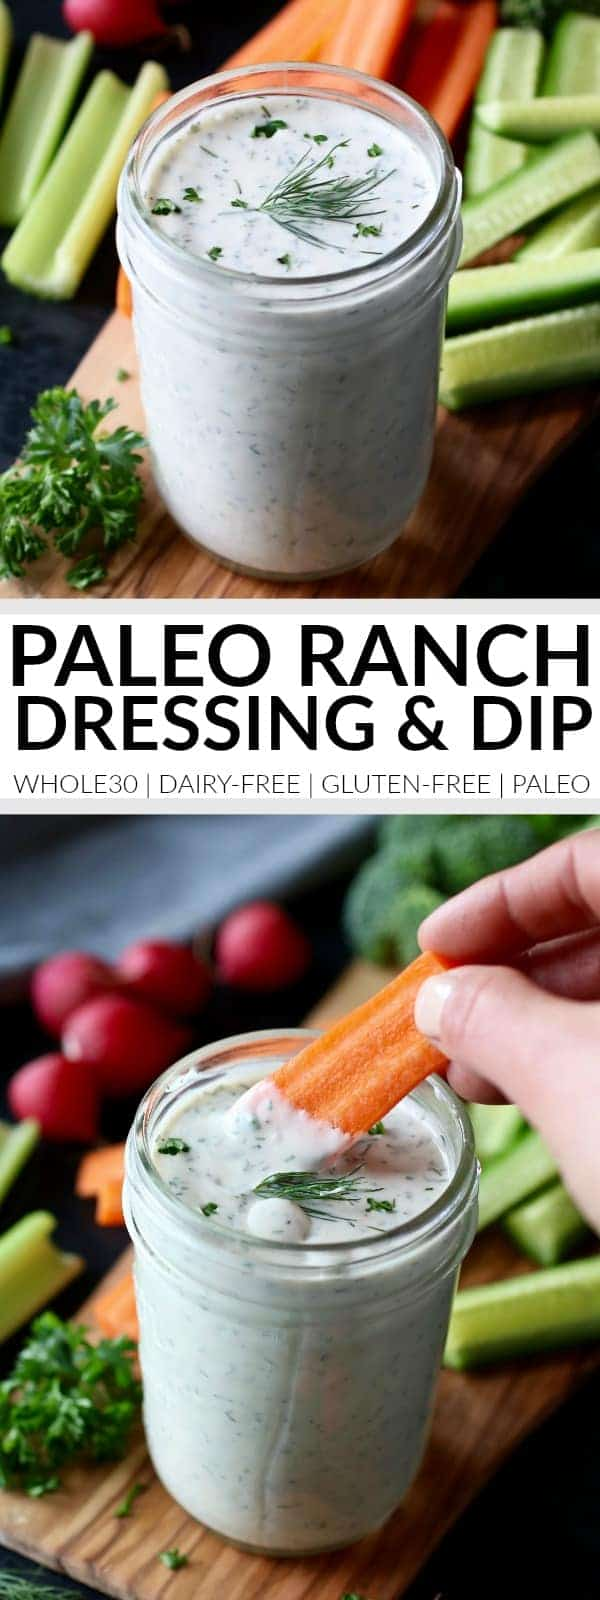 Pinterest image for Paleo Ranch Dressing & Dip